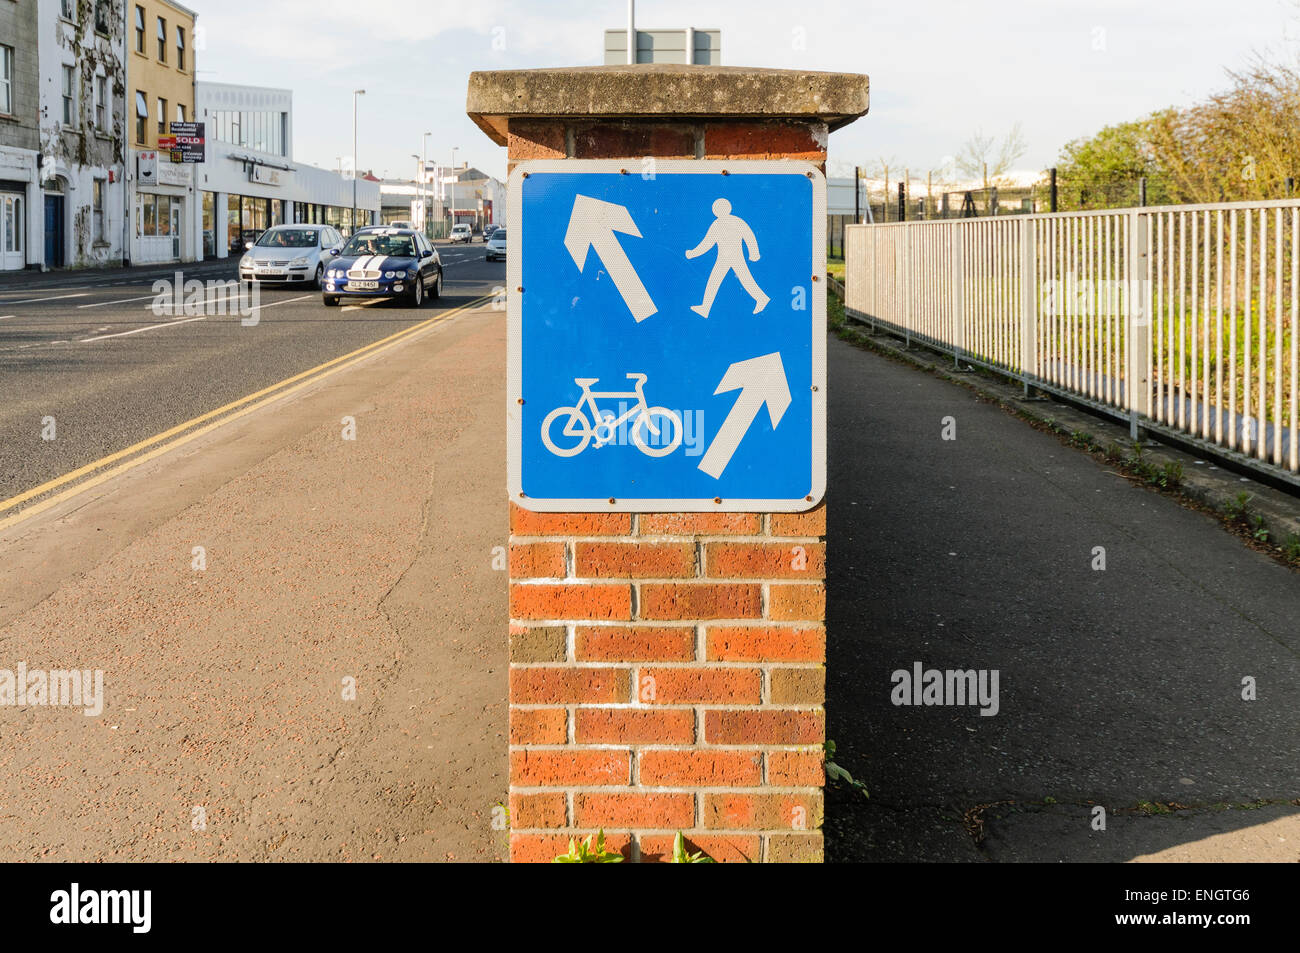 Footpath and cycle lane - Stock Image